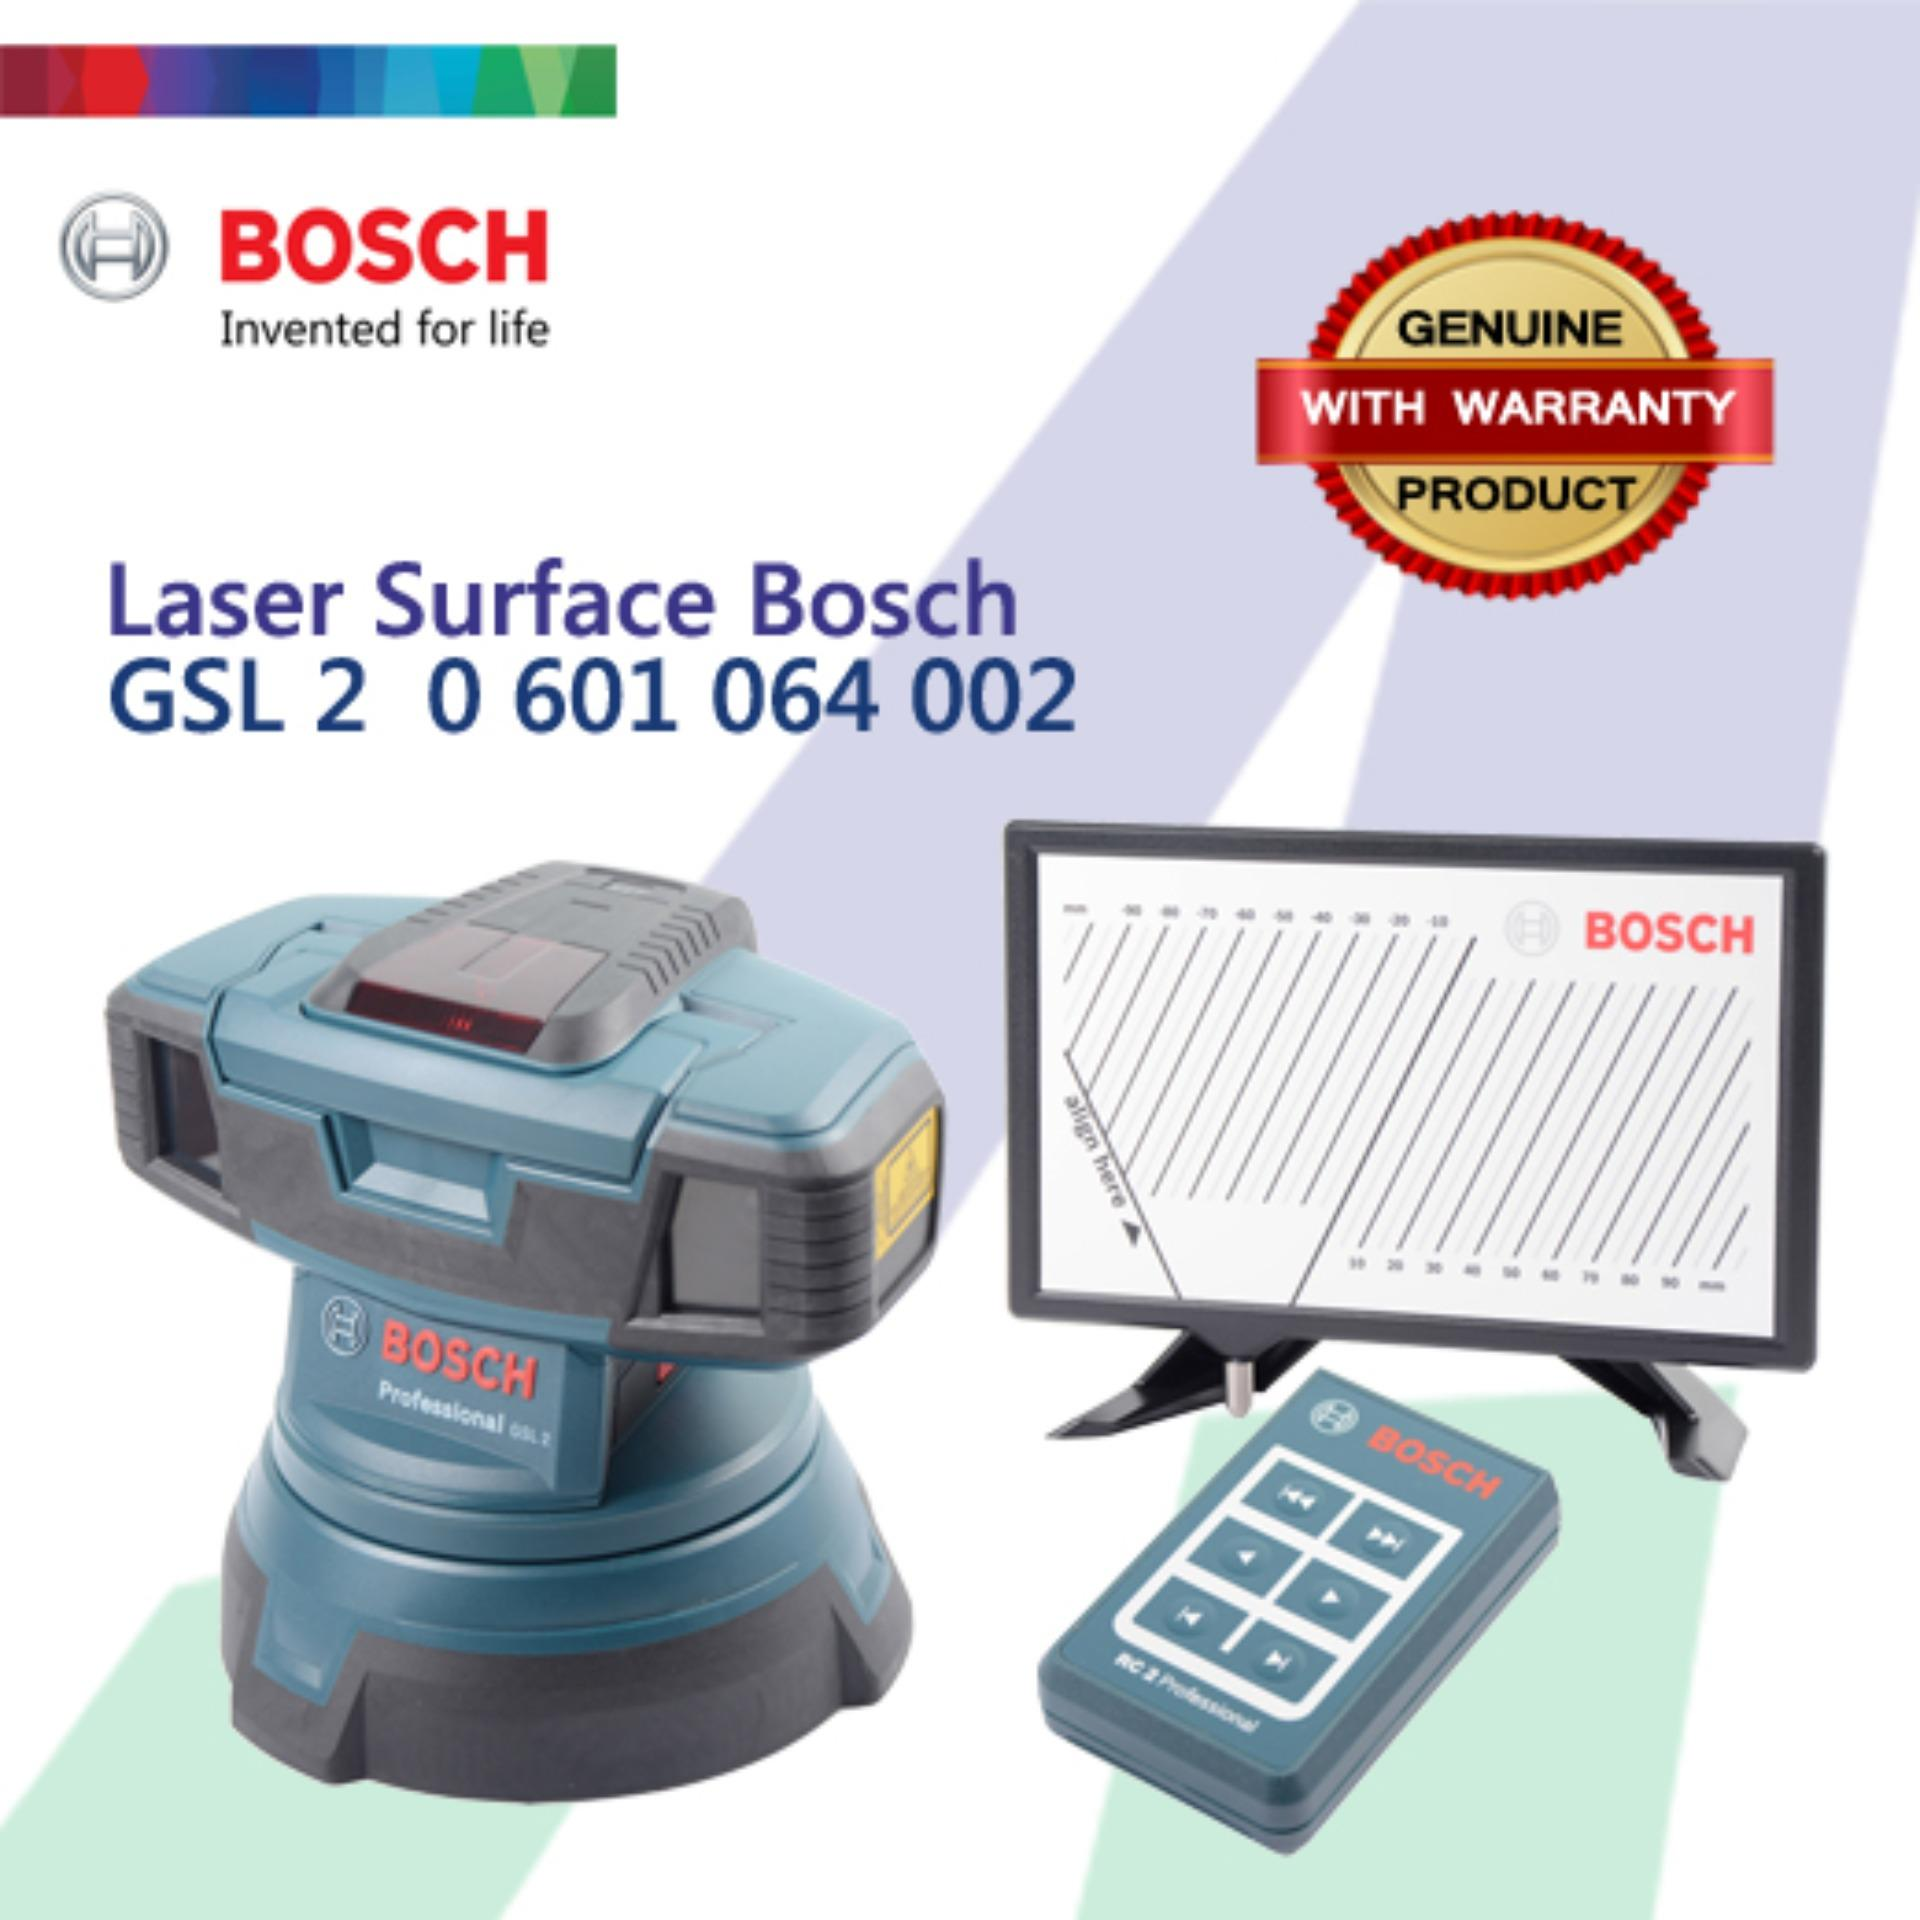 Sell Bosch Surface Laser Cheapest Best Quality Ph Store Line Lever Cross Level Gll 5 50x Kit Tripod Bt150 Php 29080